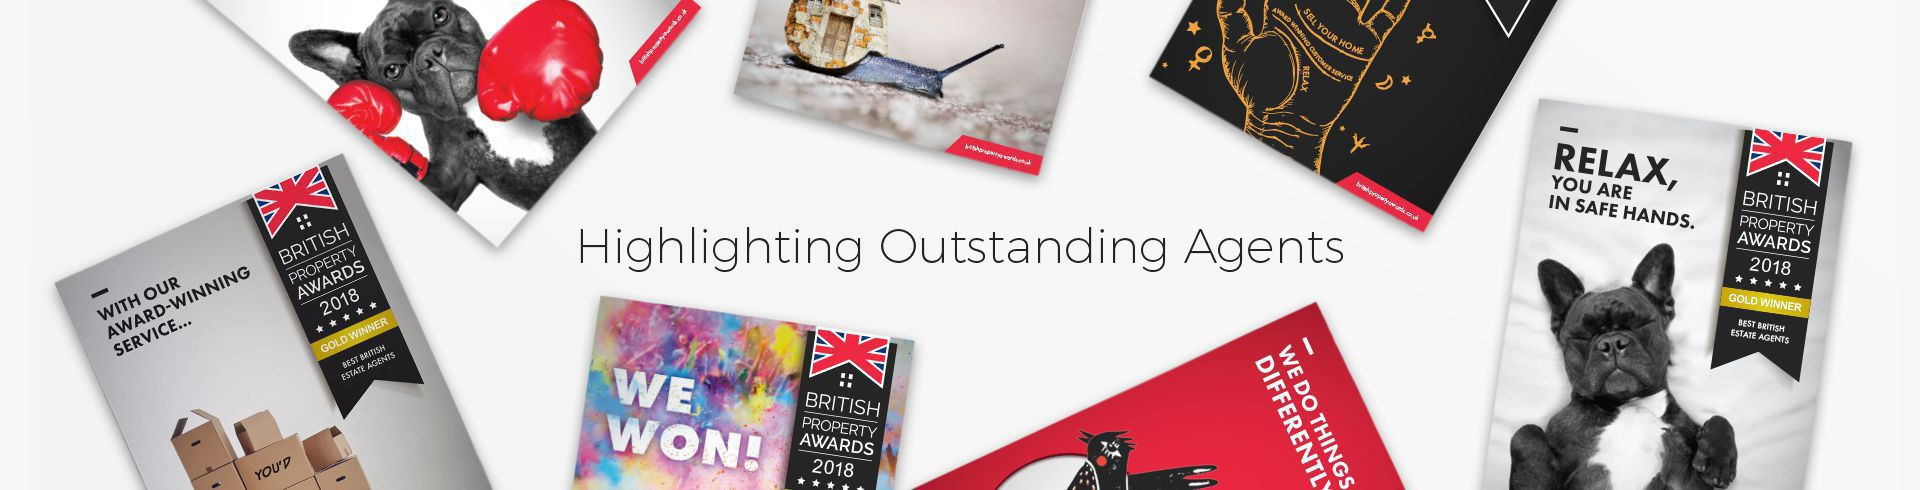 Highlighting Outstanding Agents